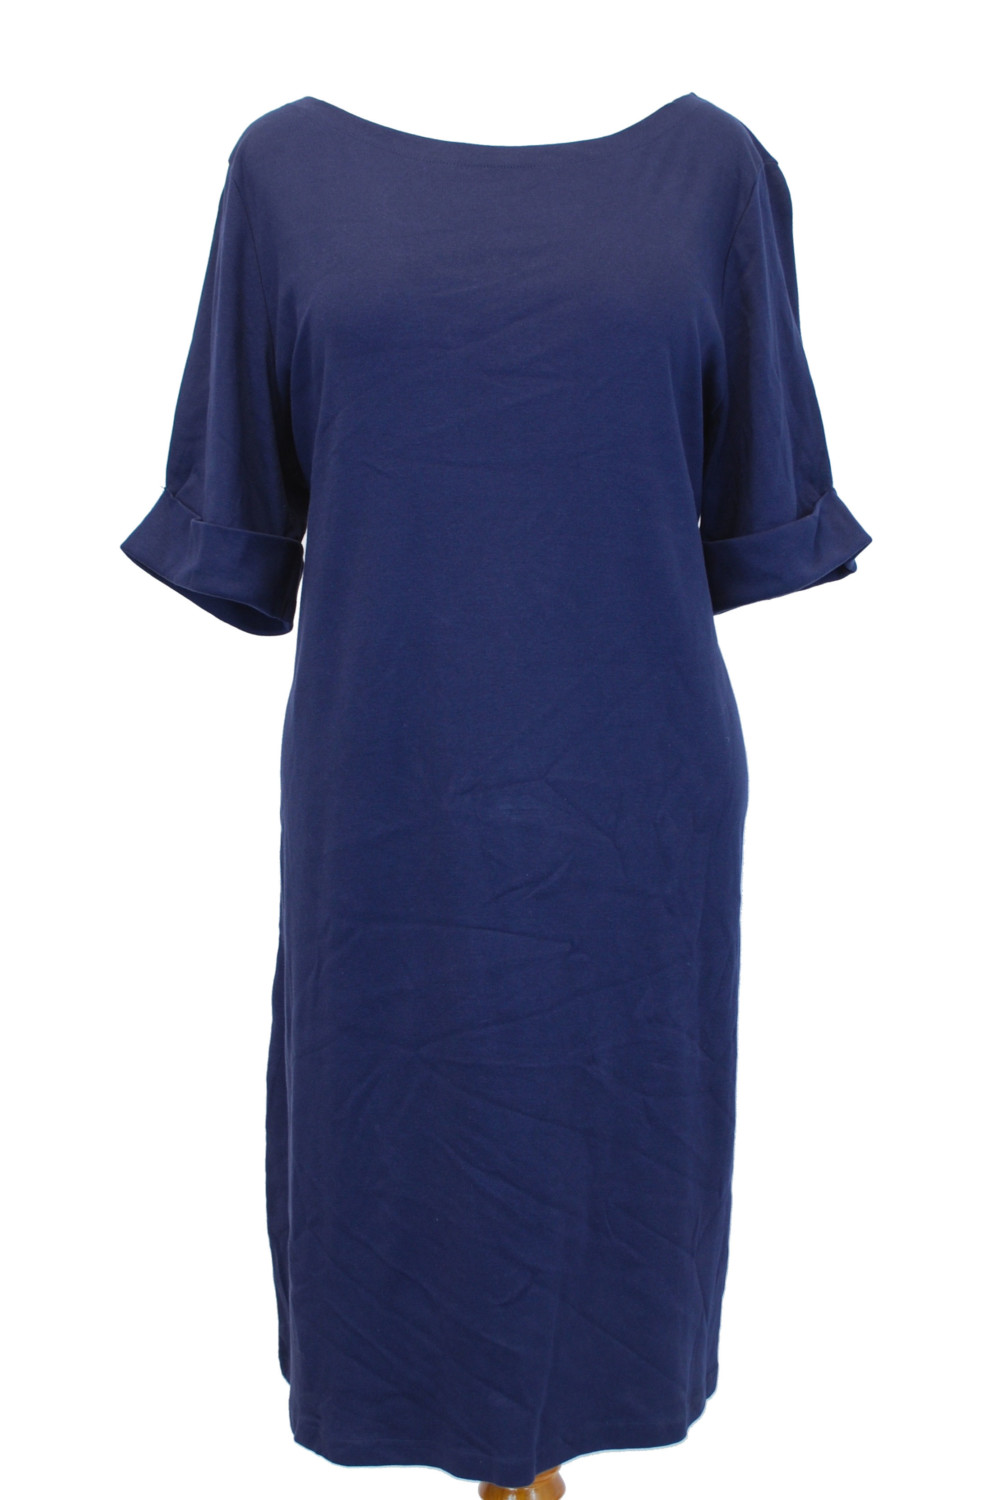 Karen Scott Dress – Original Retail: $54, CWS: $15